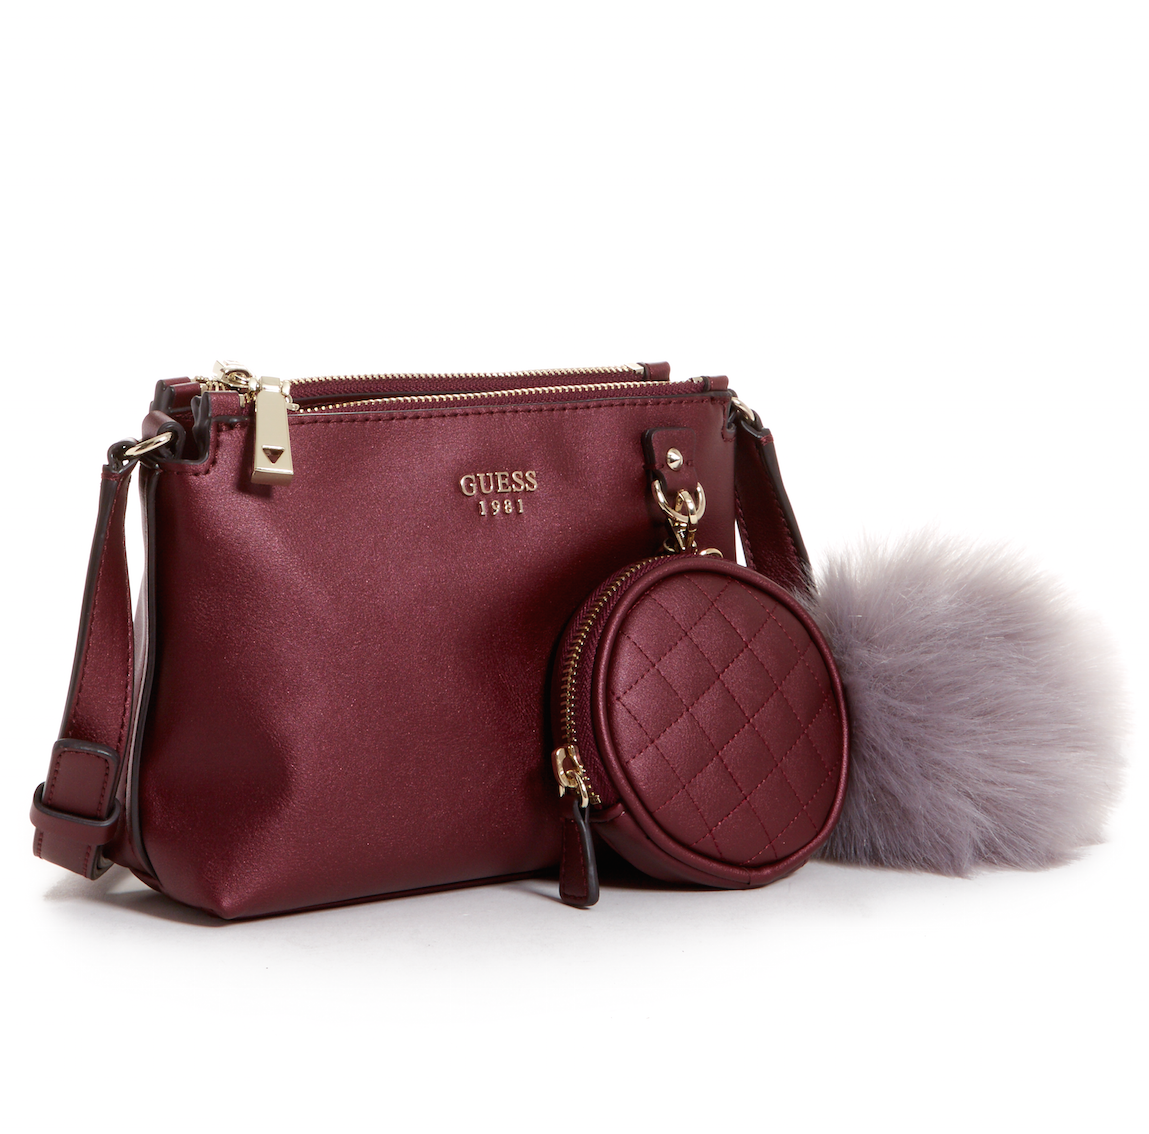 A Bordeaux Cross body is perfect for the holidays